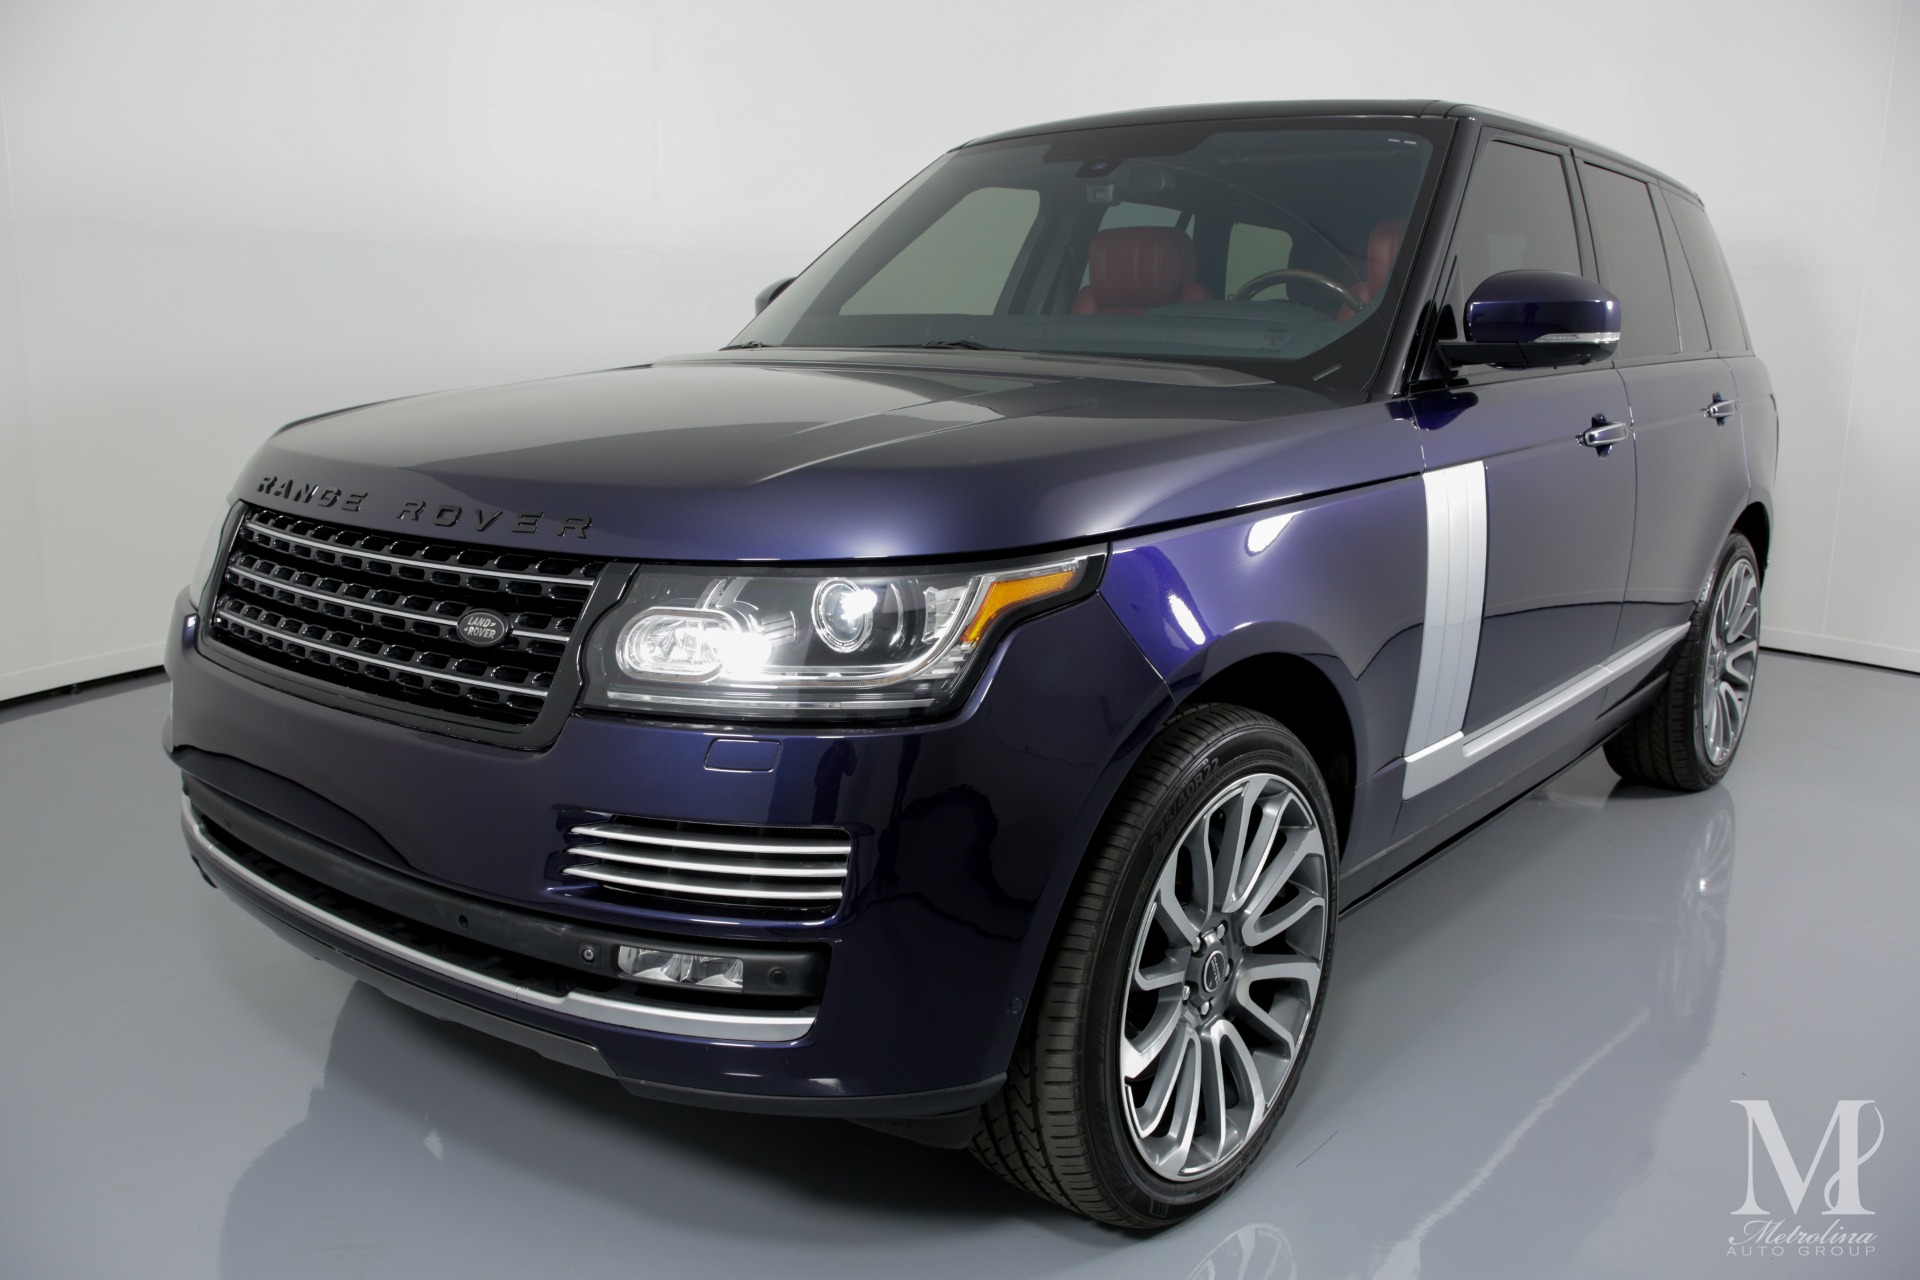 Used 2014 Land Rover Range Rover Autobiography 4x4 4dr SUV for sale Sold at Metrolina Auto Group in Charlotte NC 28217 - 4